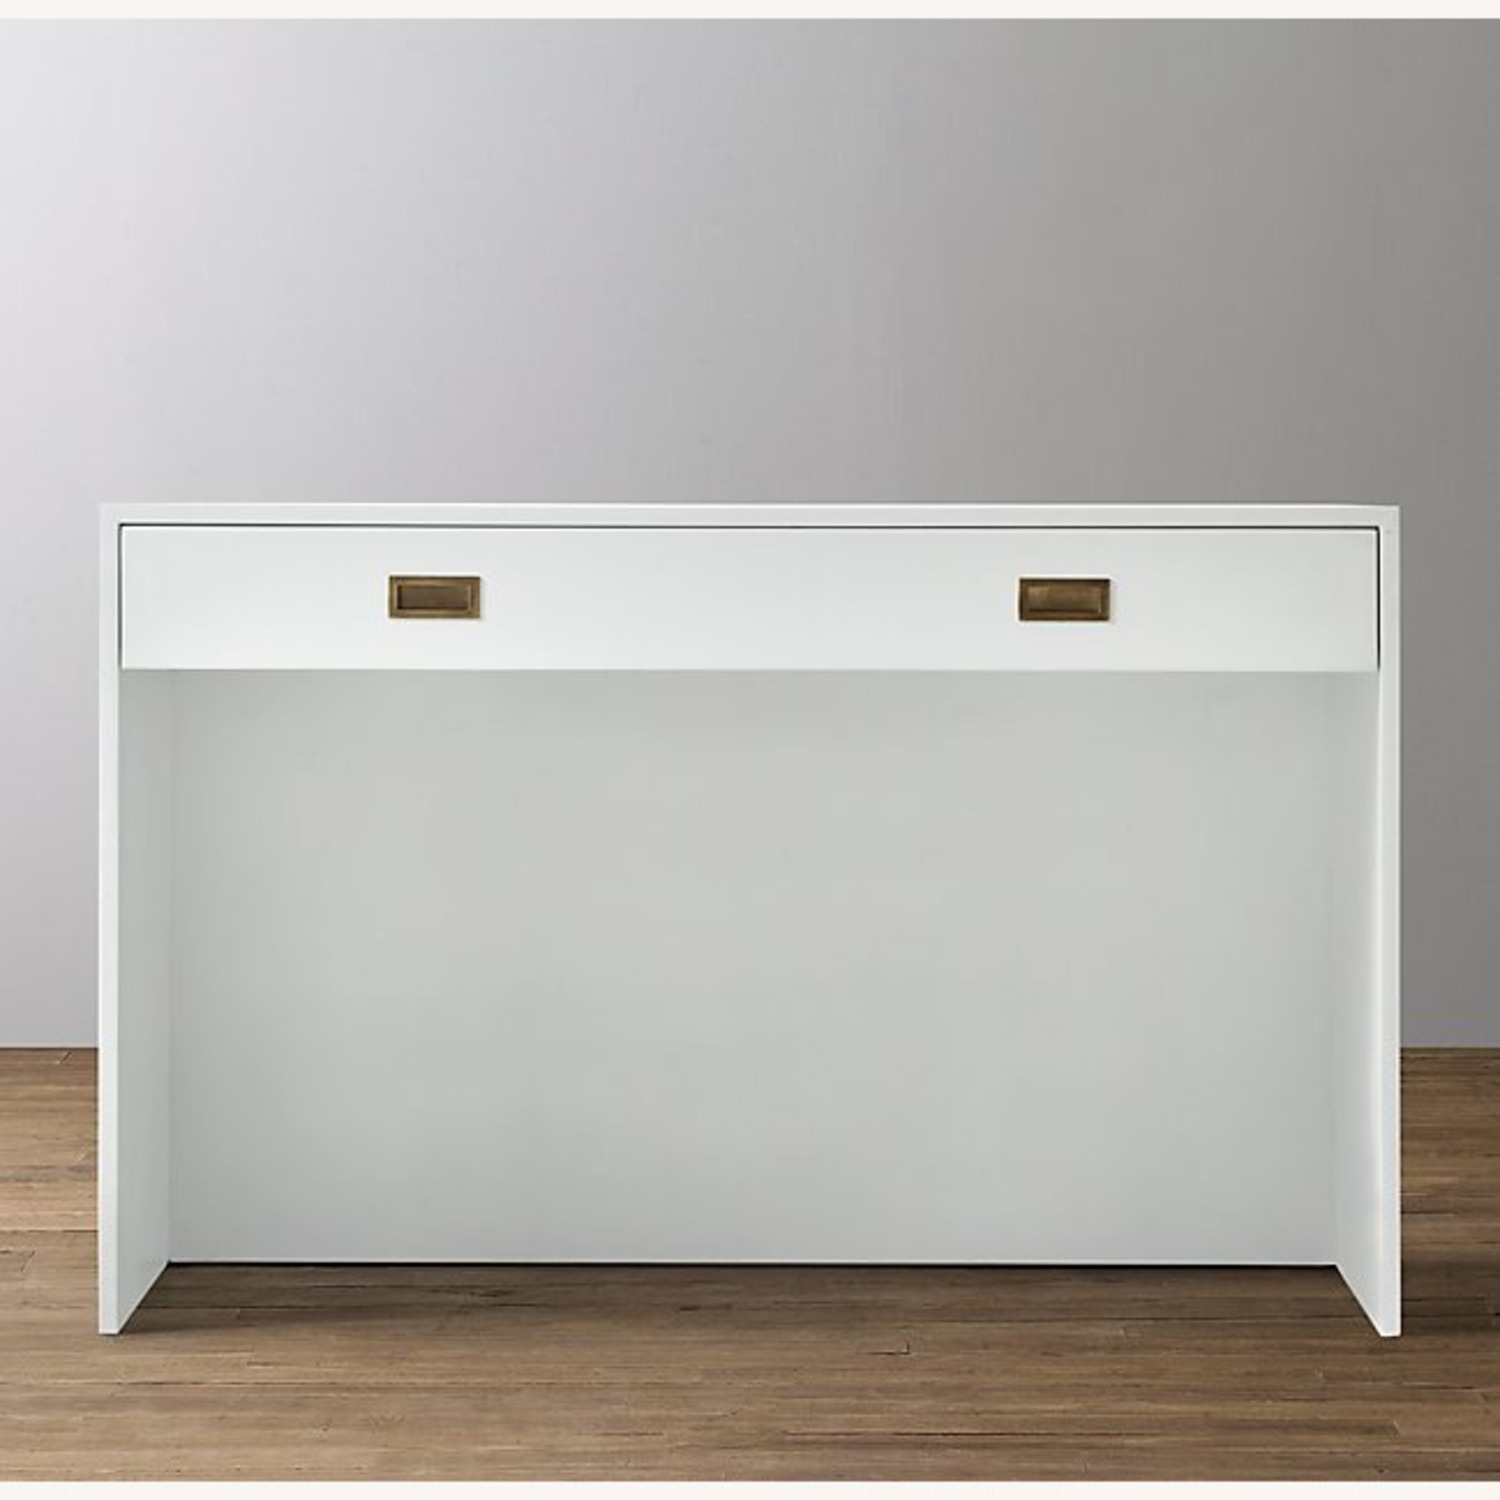 Restoration Hardware Avalon Desk in White - image-1